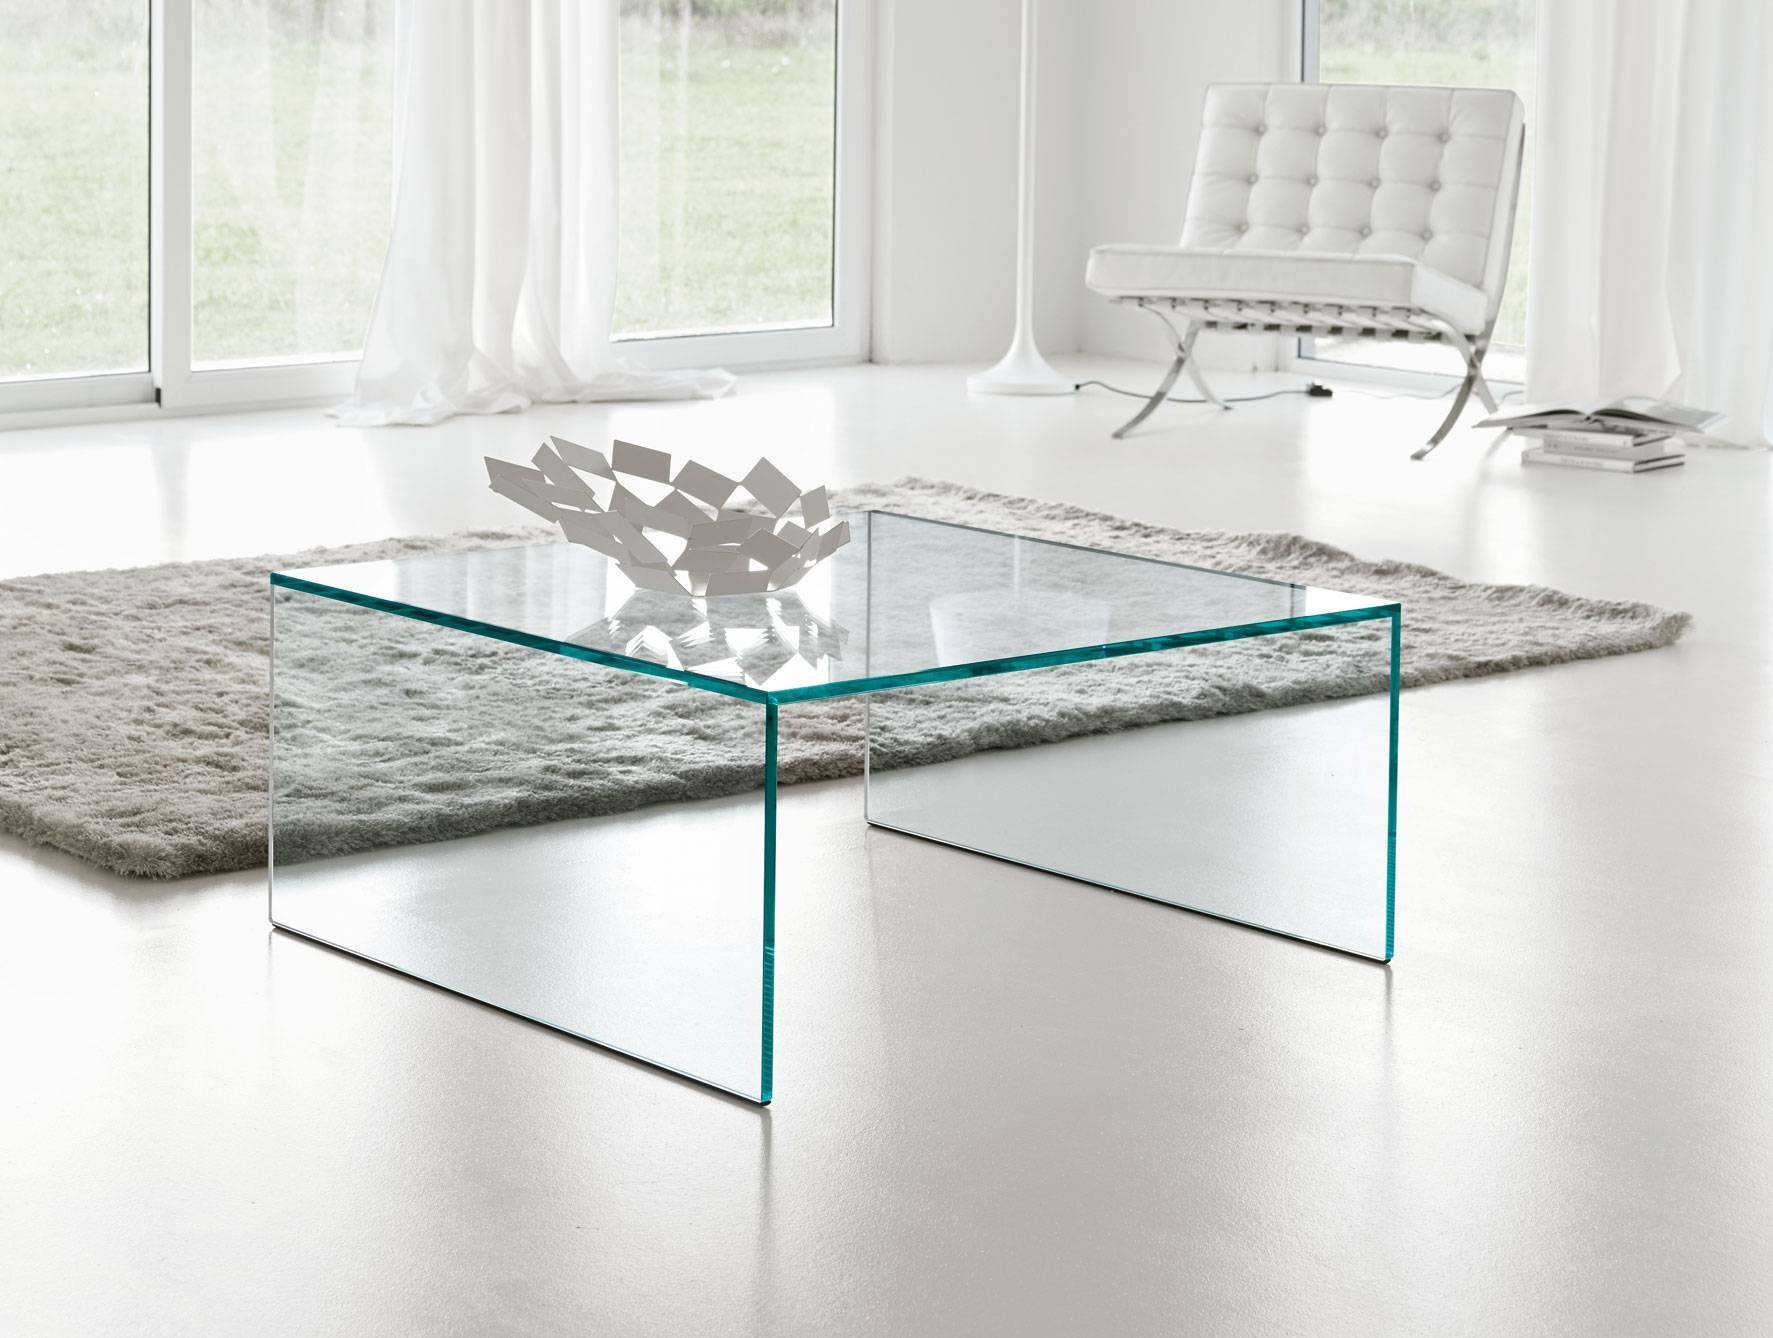 Nella Vetrina Tonelli Eden Modern Italian Square Coffee Table intended for Square Glass Coffee Tables (Image 12 of 15)